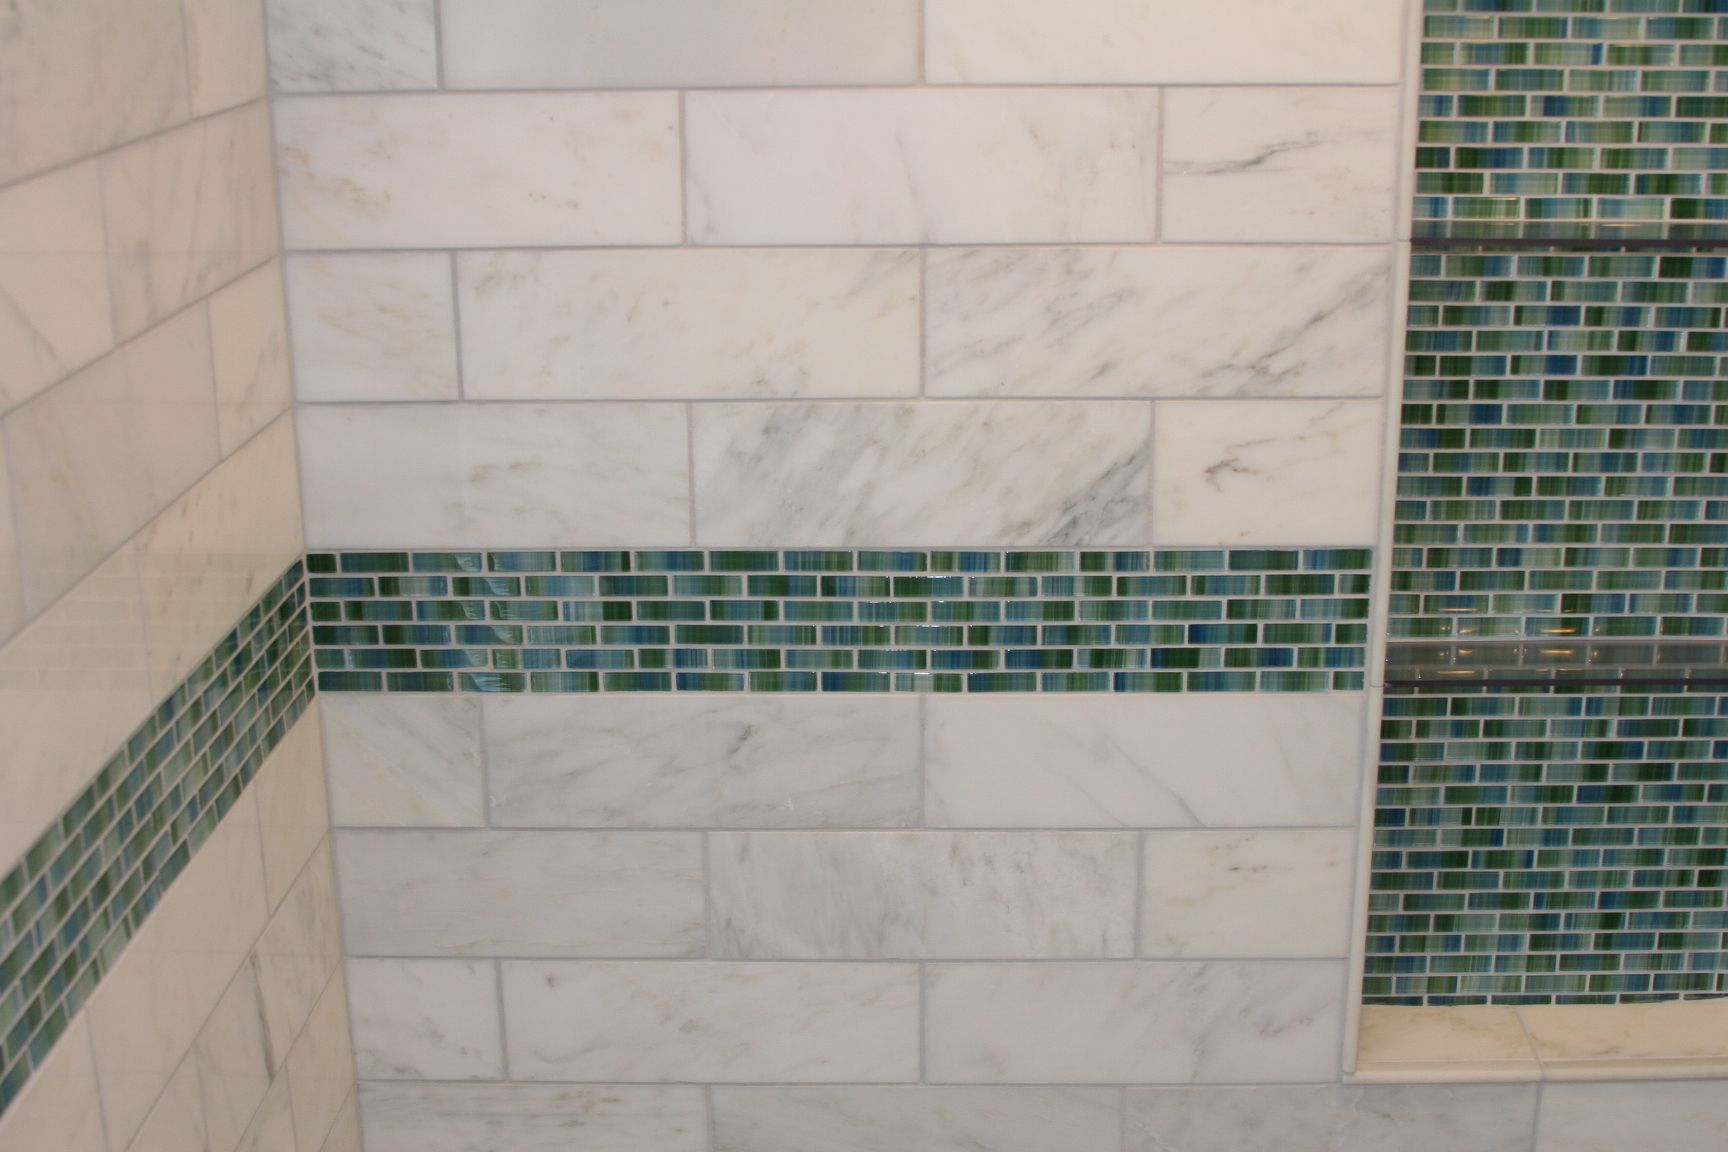 Bathroom remodel shower tile with teal accent tile stripe and niche.